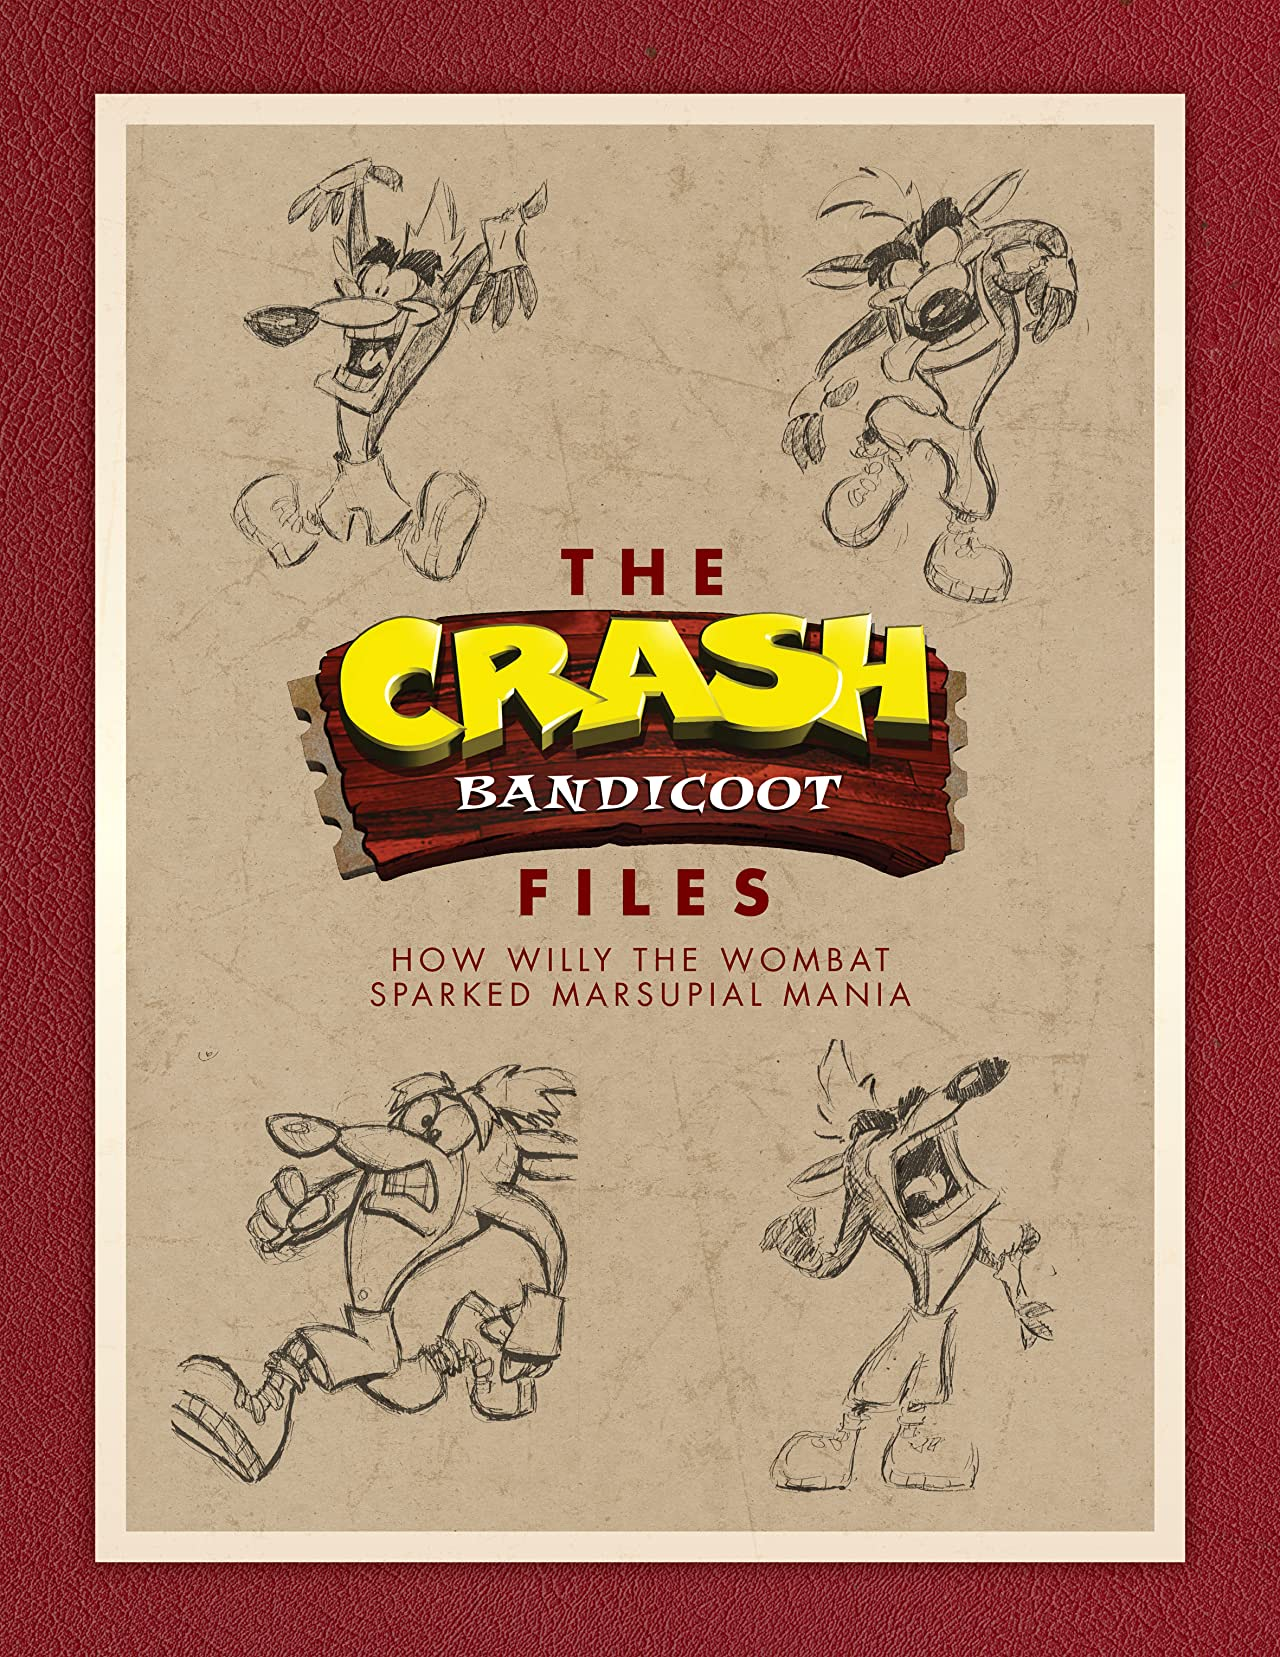 The Crash Bandicoot Files: How Willy the Wombat Sparked Marsupial Mania